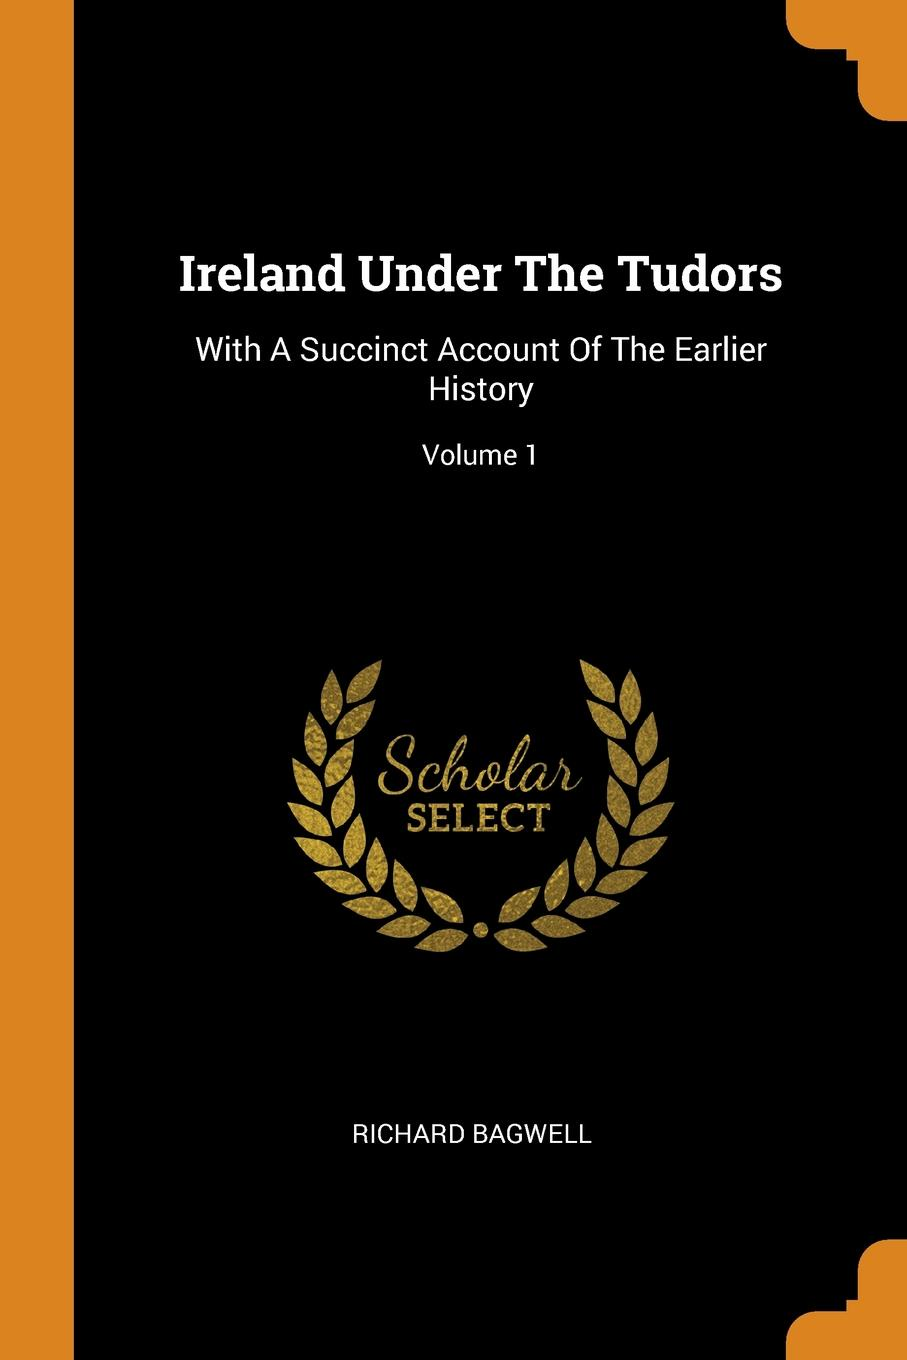 Richard Bagwell Ireland Under The Tudors. With A Succinct Account Of The Earlier History; Volume 1 bagwell richard ireland under the tudors with a succinct account of the earlier history vol 2 of 3